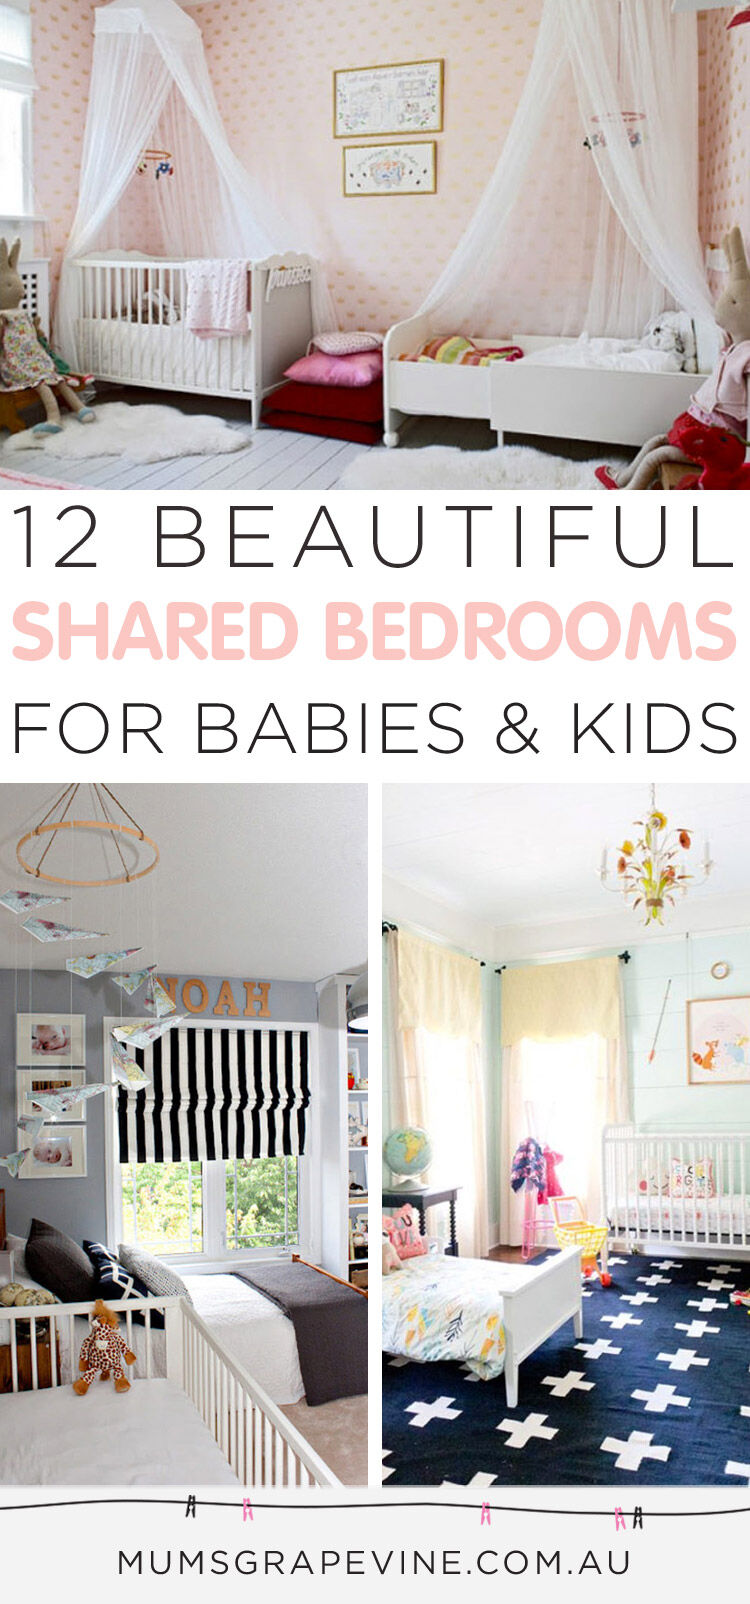 12 beautiful shared bedroom ideas for babies and kids